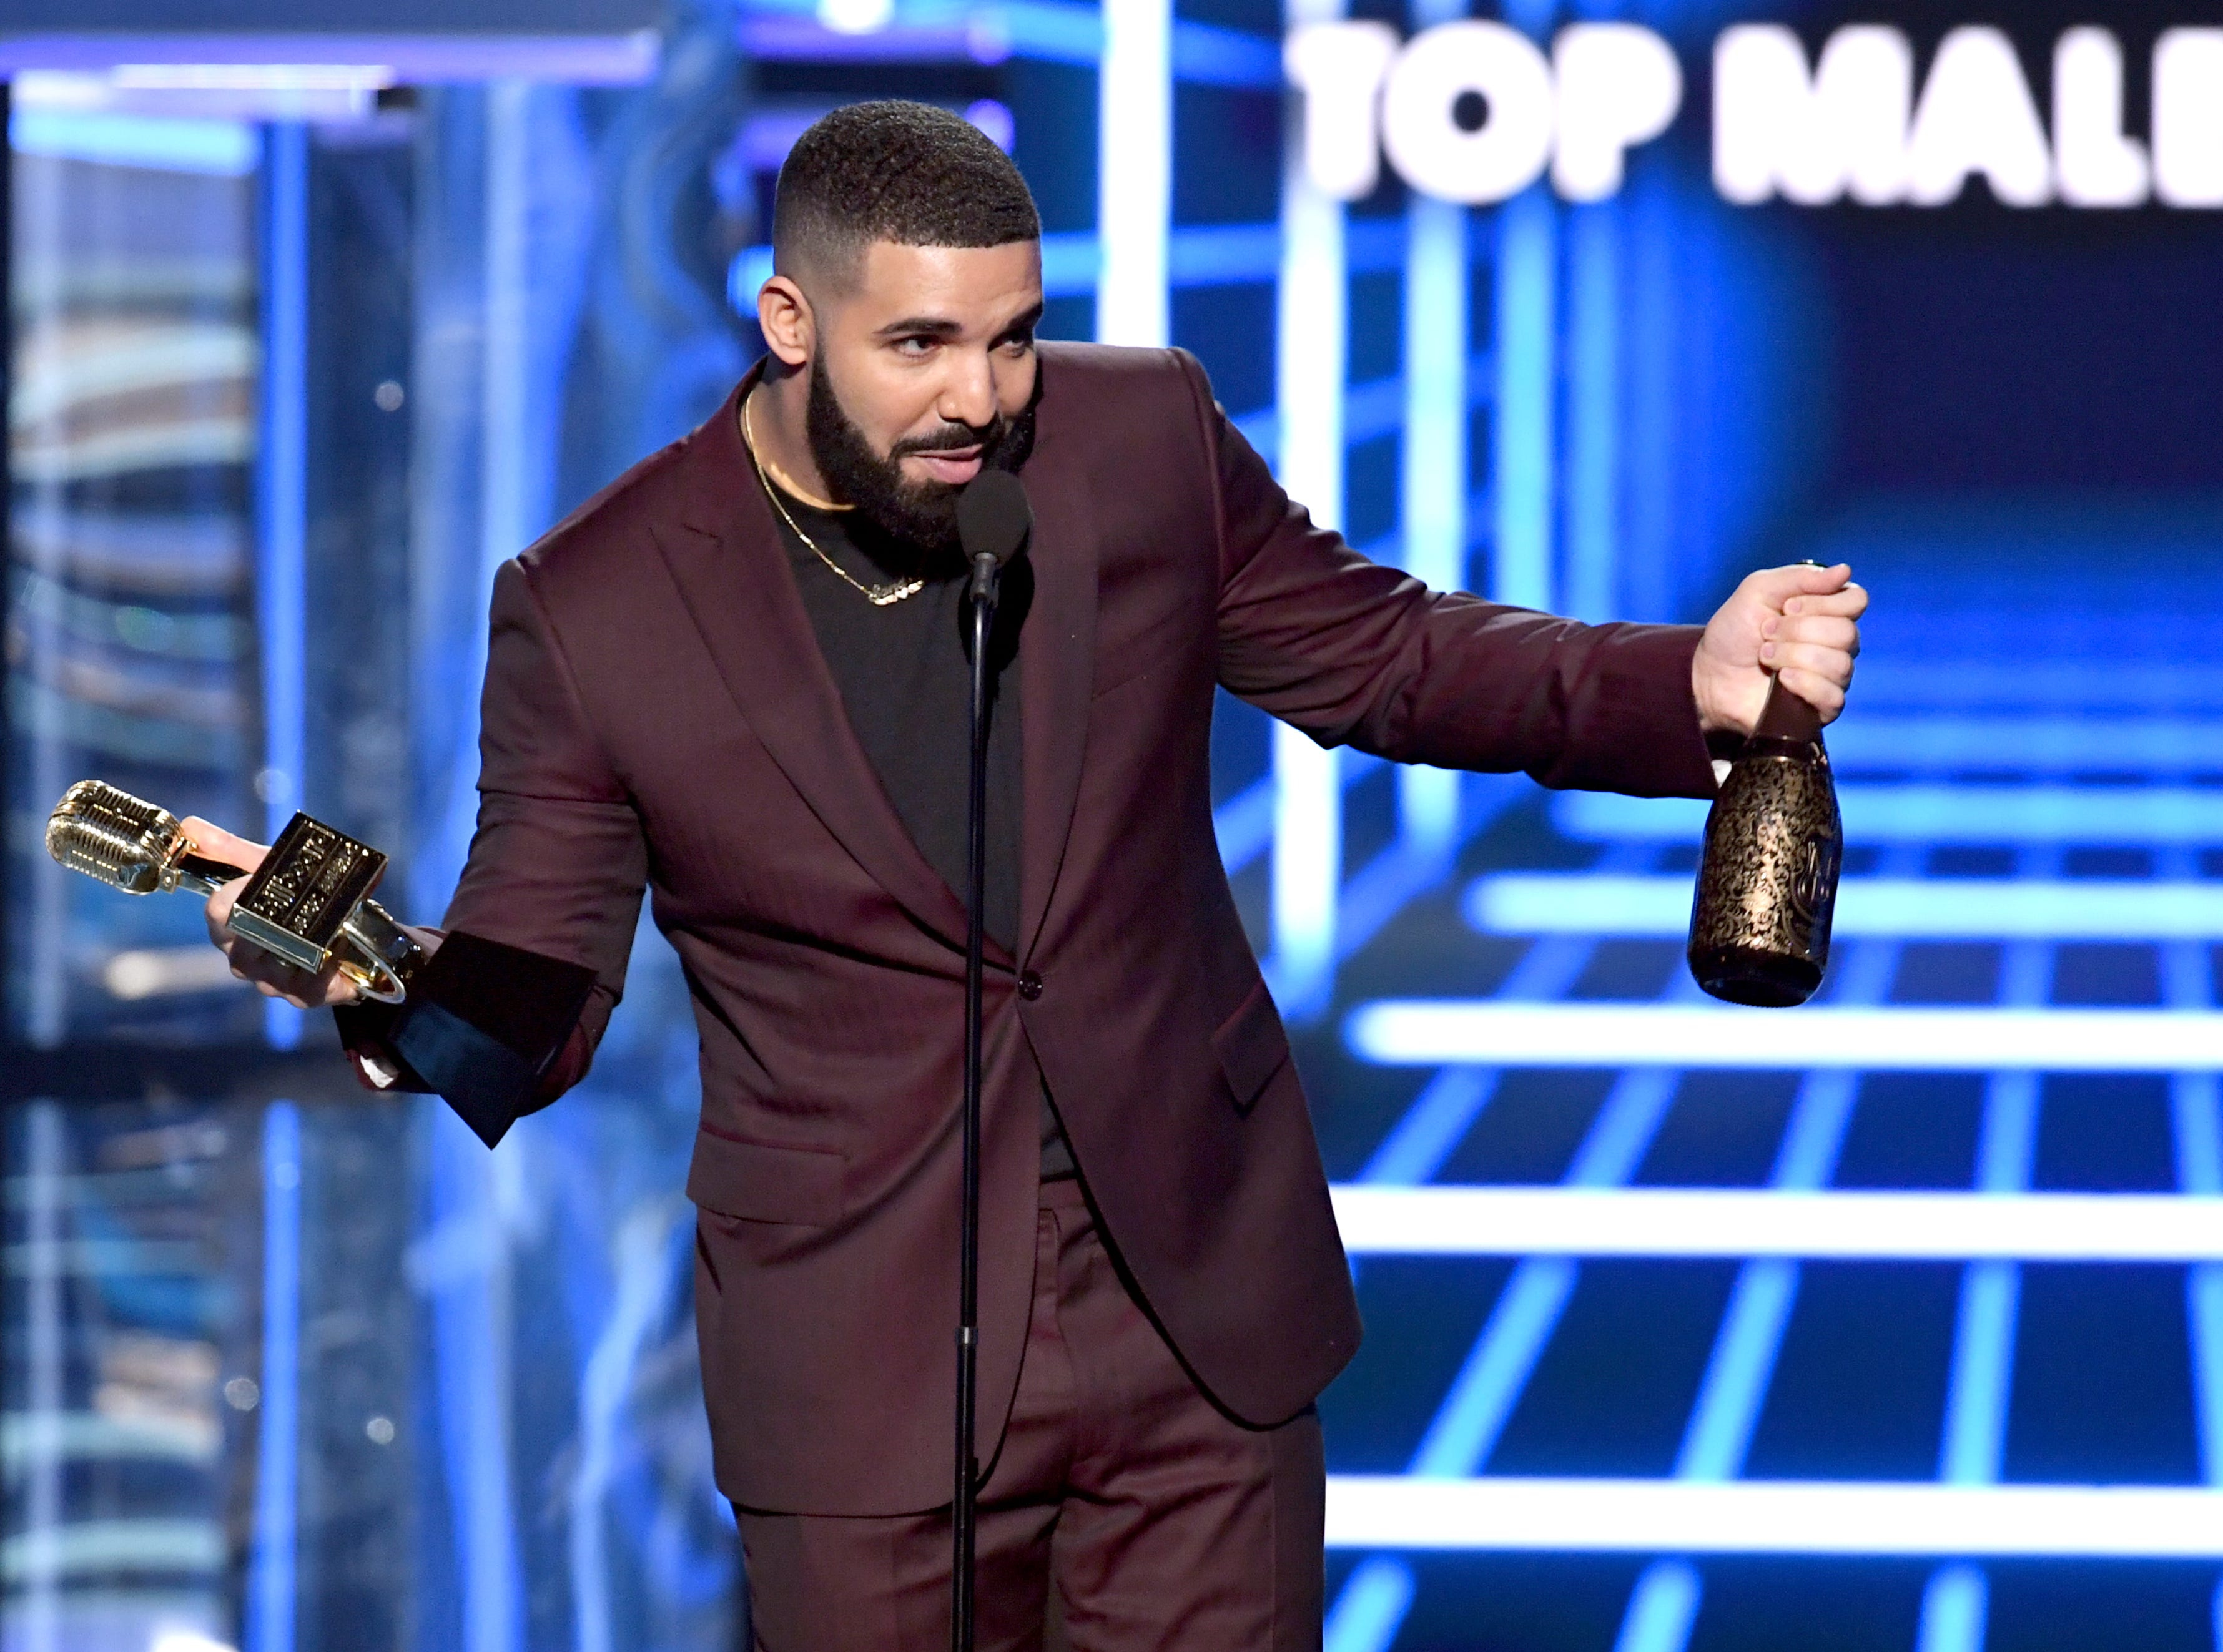 Drake accepts the Top Male Artist award  onstage during the 2019 Billboard Music Awards at MGM Grand Garden Arena on May 01, 2019 in Las Vegas, Nevada.